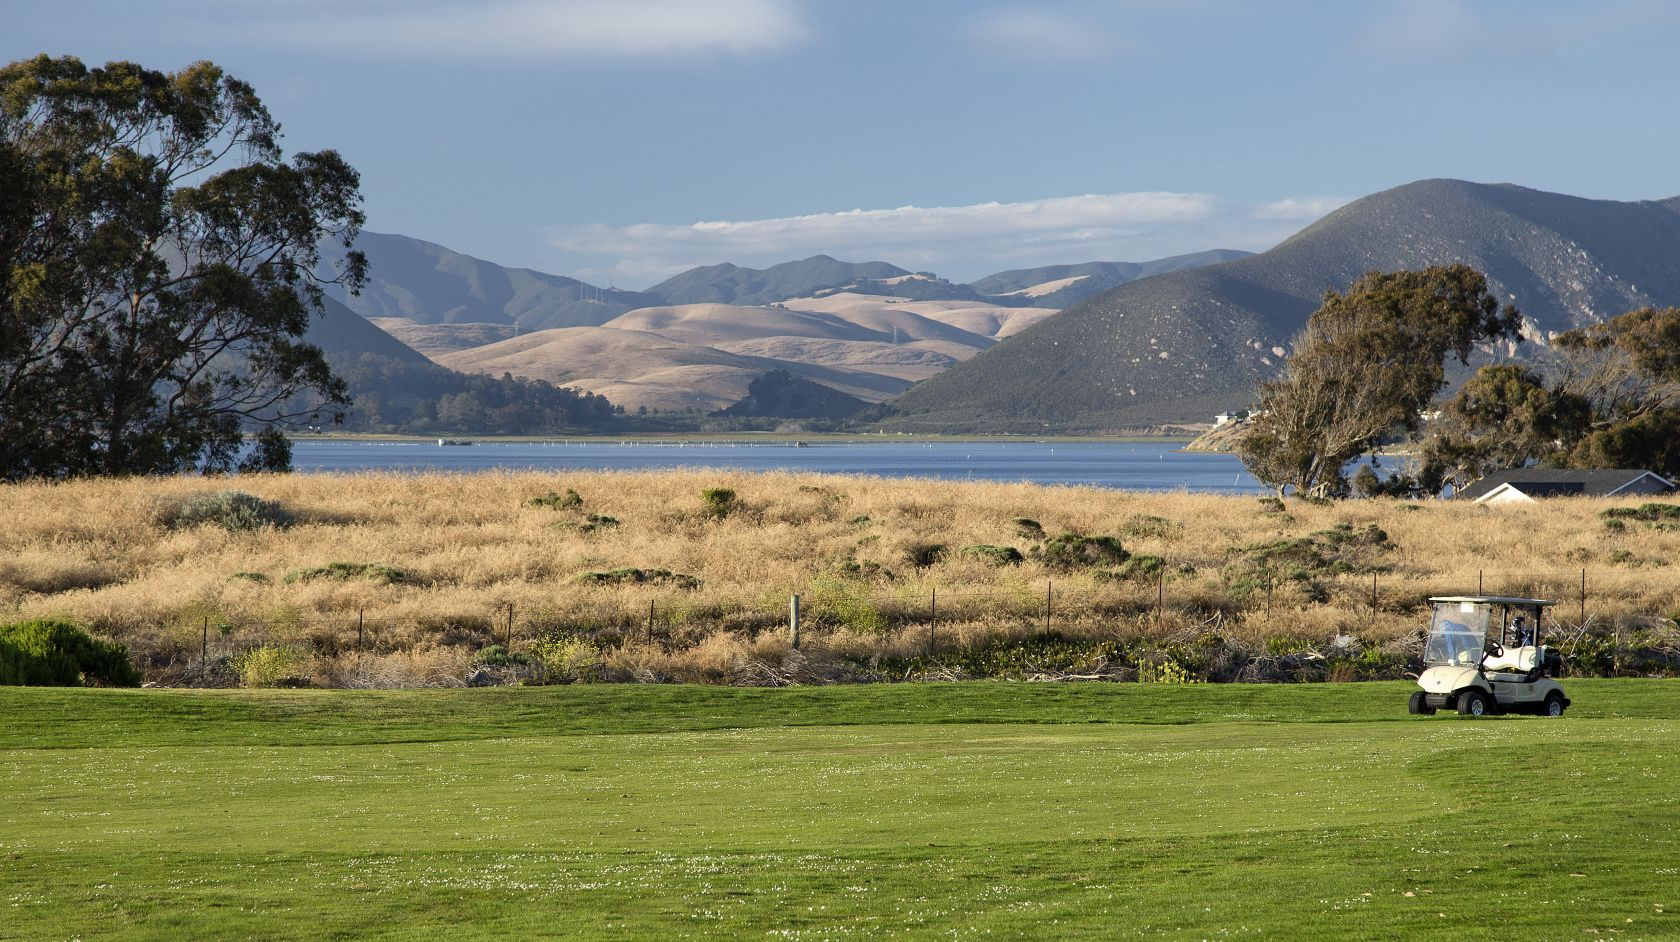 View of the rolling hills and Los Osos backbay from Sea Pines Golf Resort 9-hole executive course